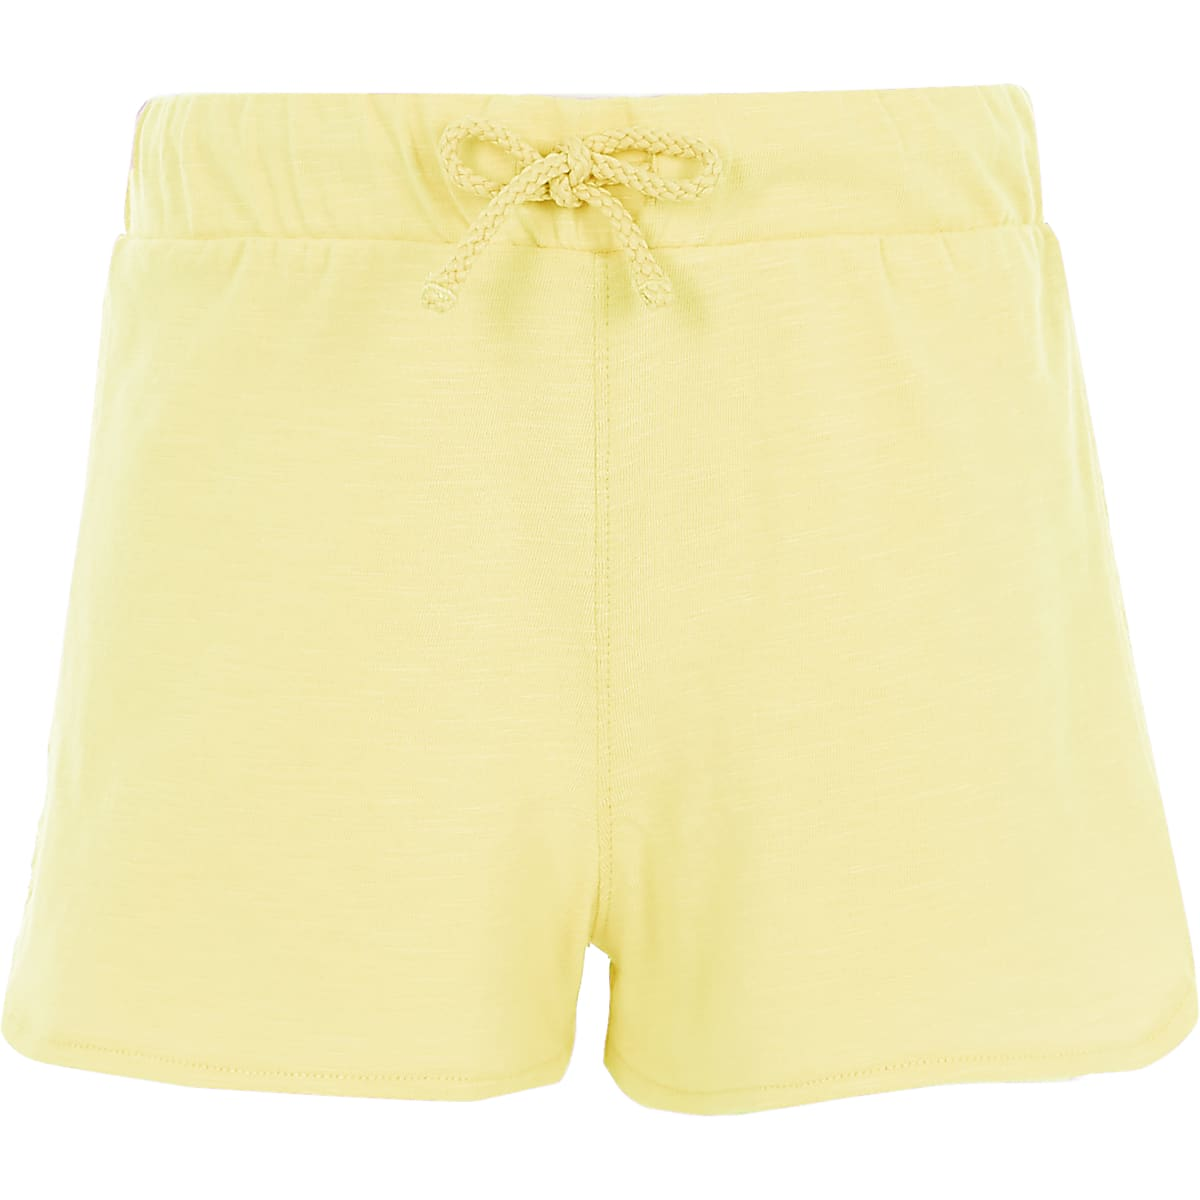 Girls yellow crochet side runner shorts